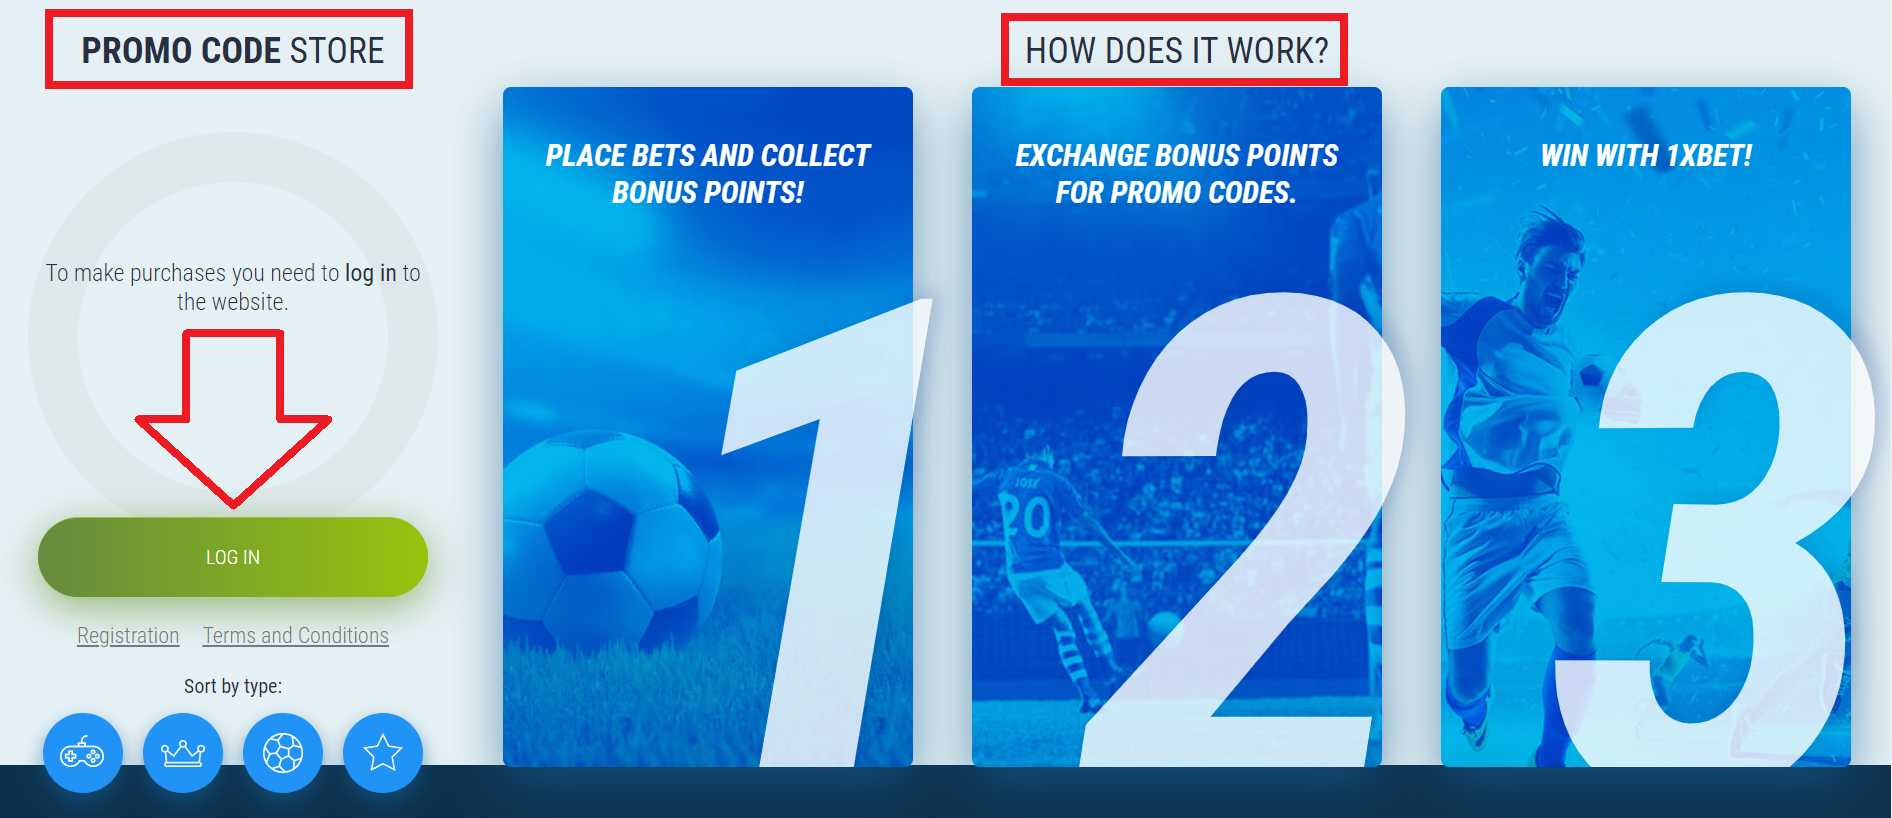 How to use the funds received for activating the 1xBet code